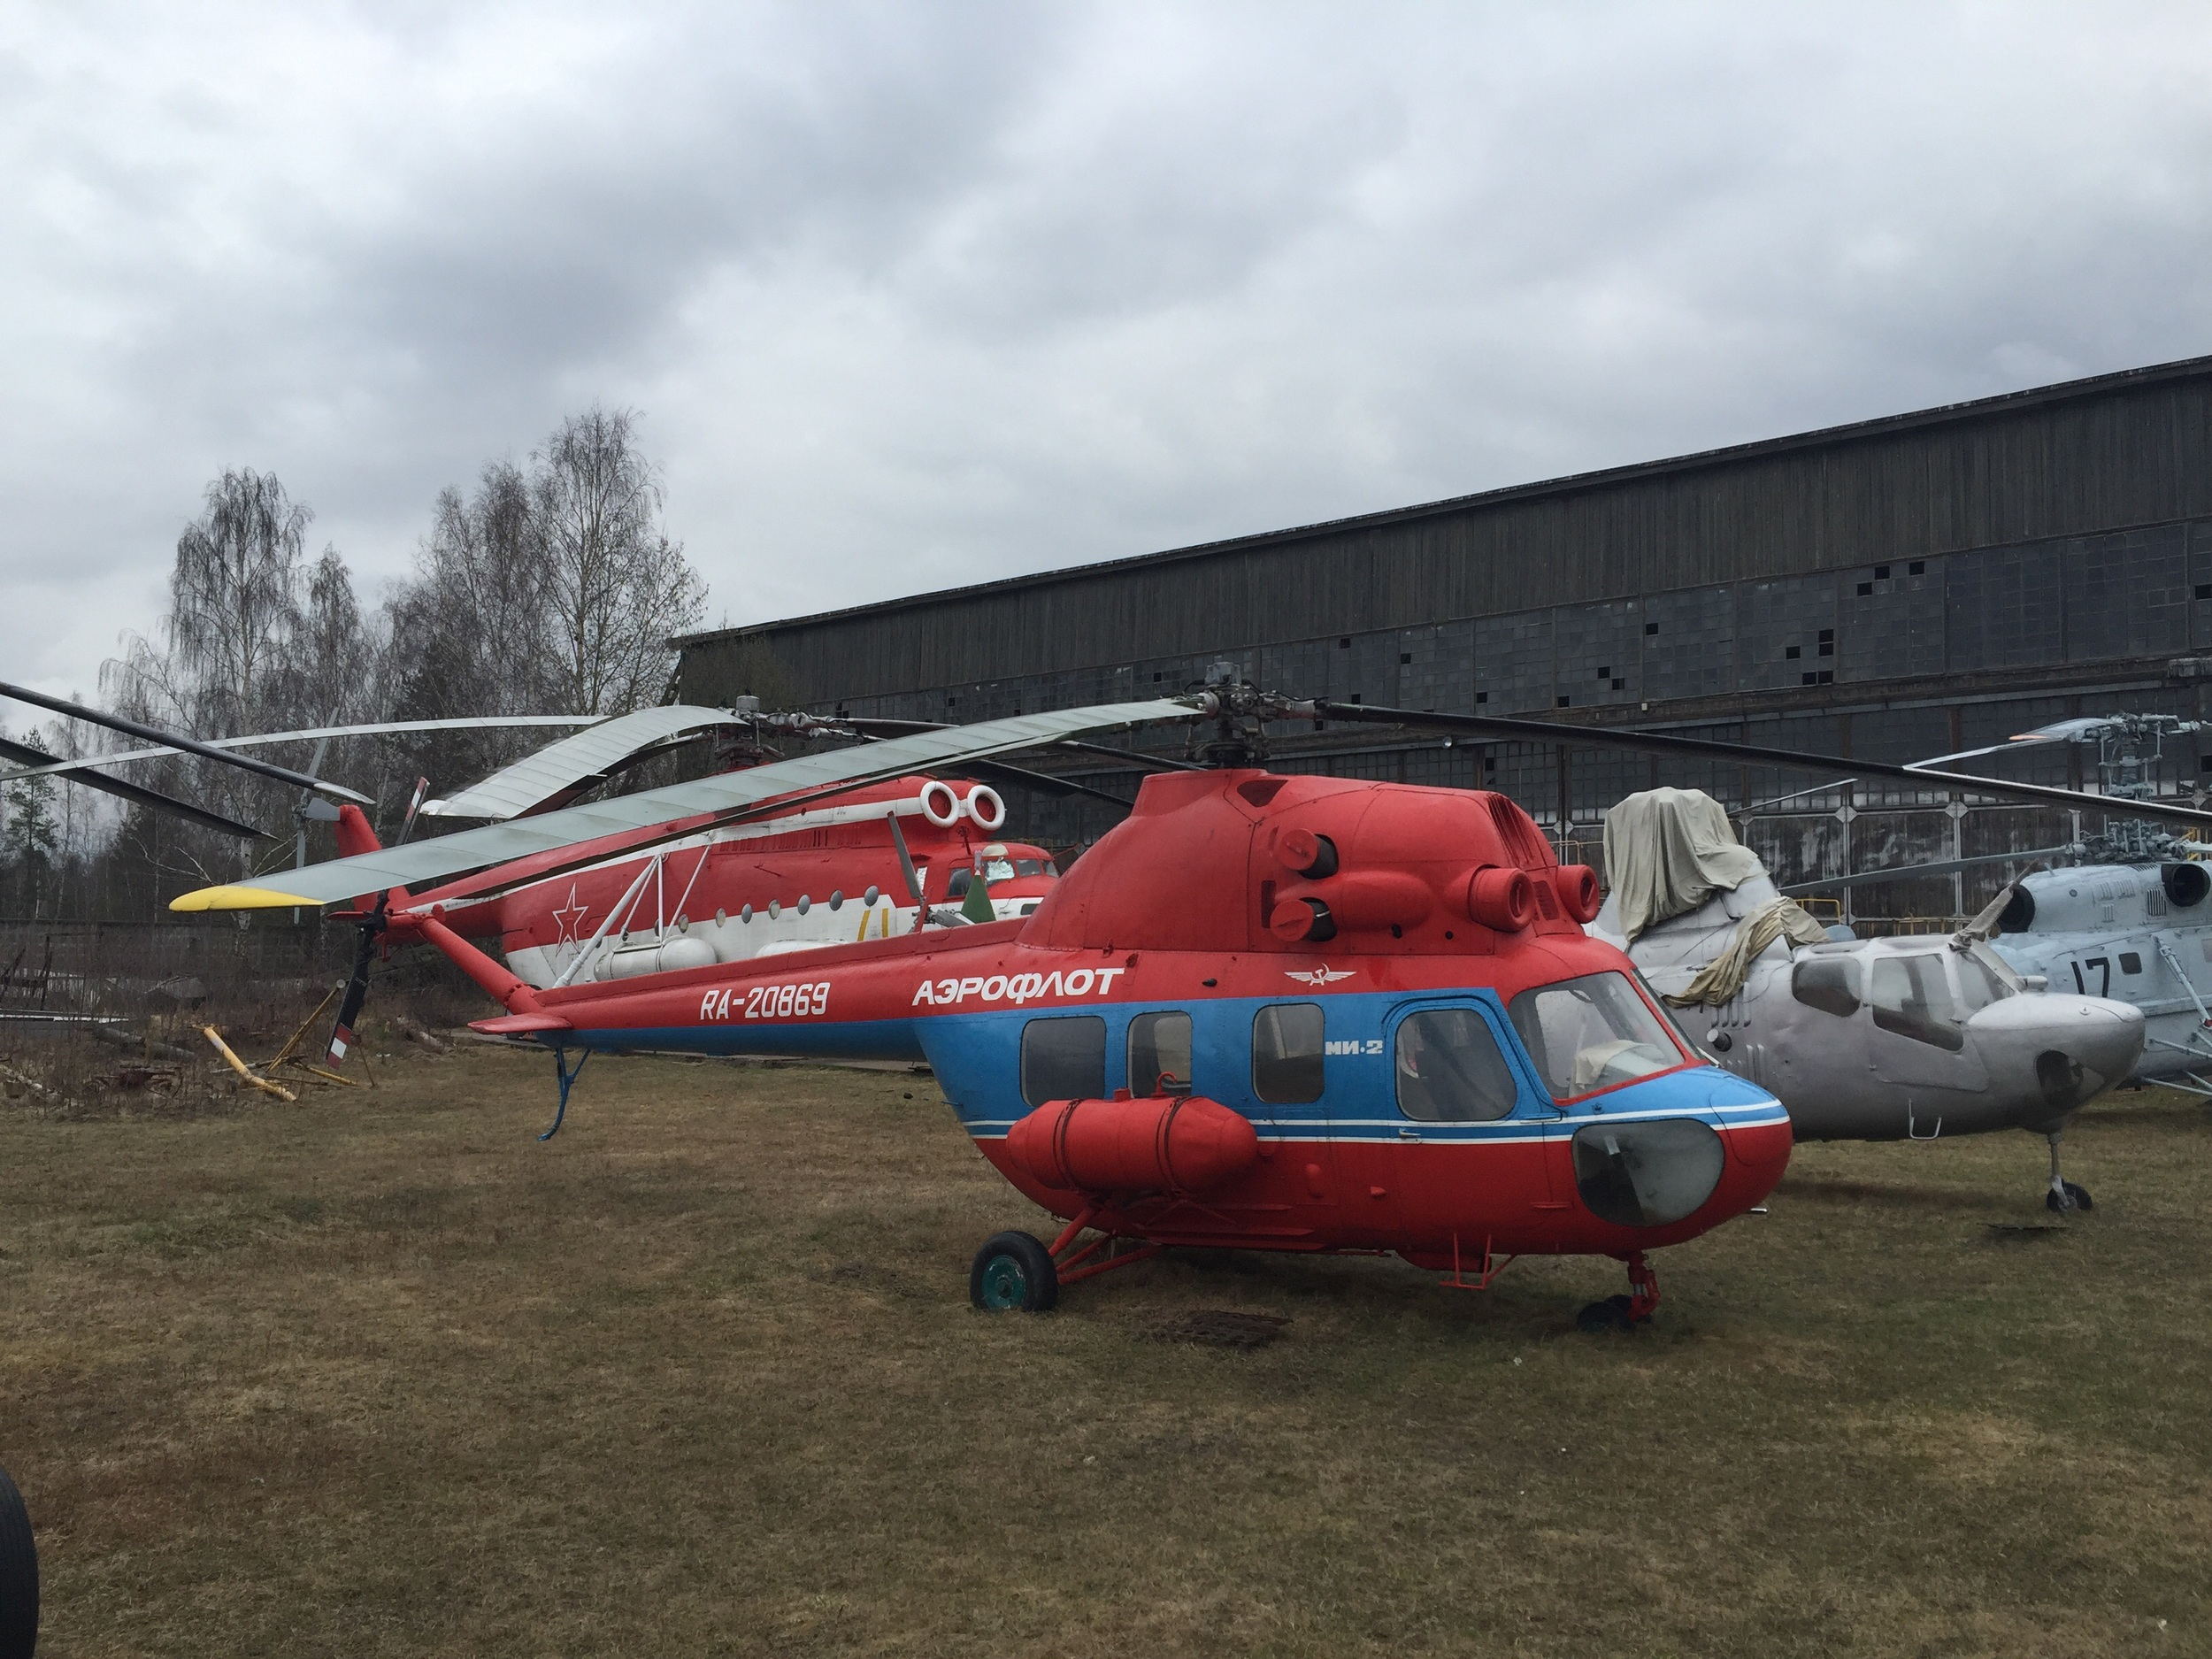 A tiny, cute, helicopter, the Mil Mi-2